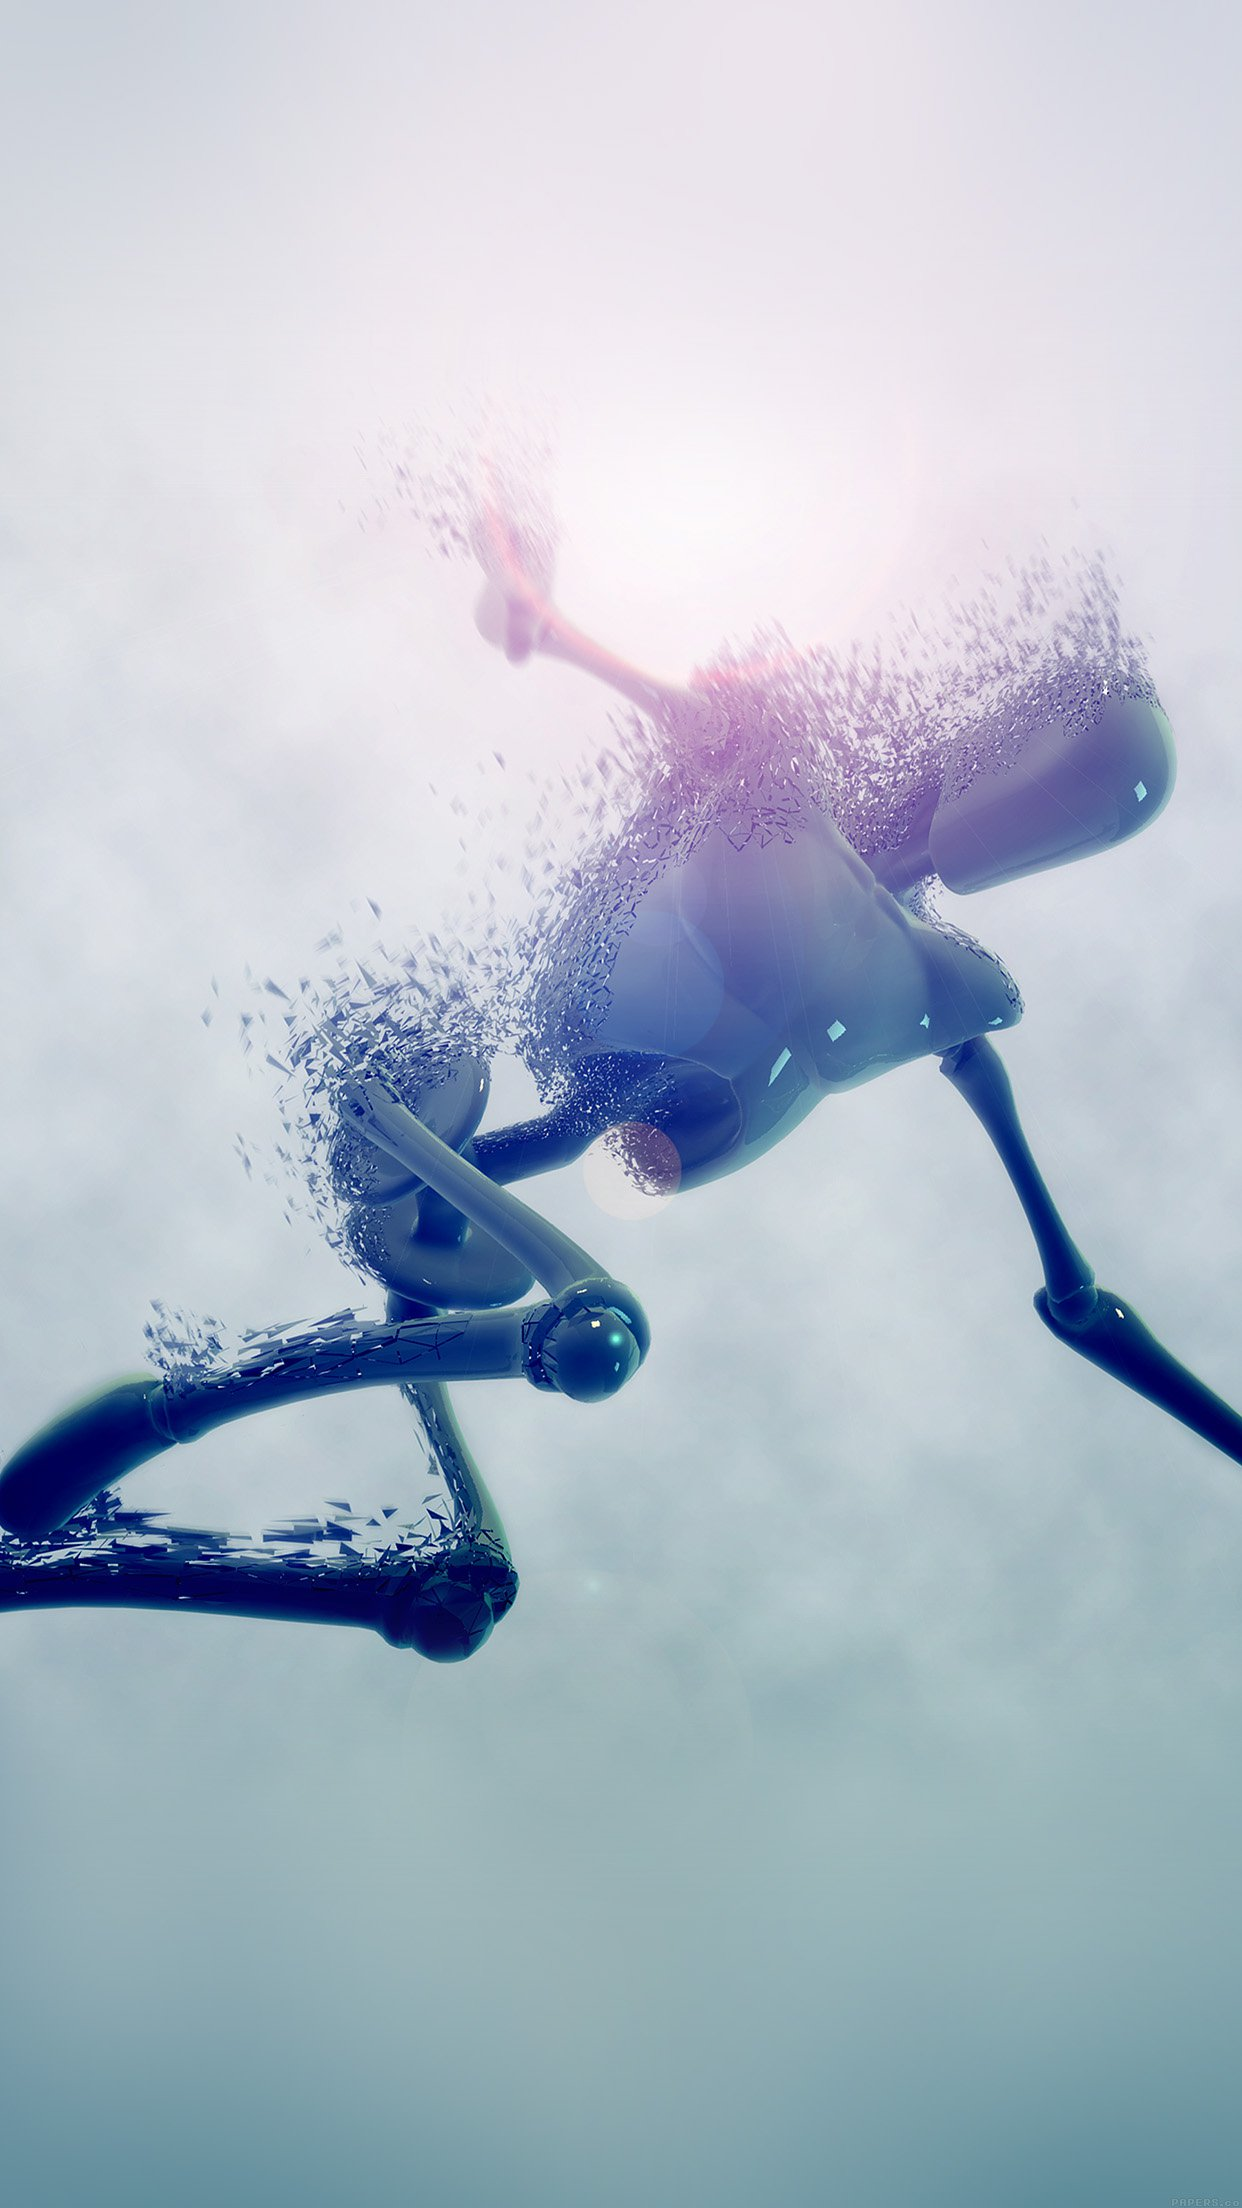 Robot In Water Illust 3d Hd Art Android Wallpaper Android